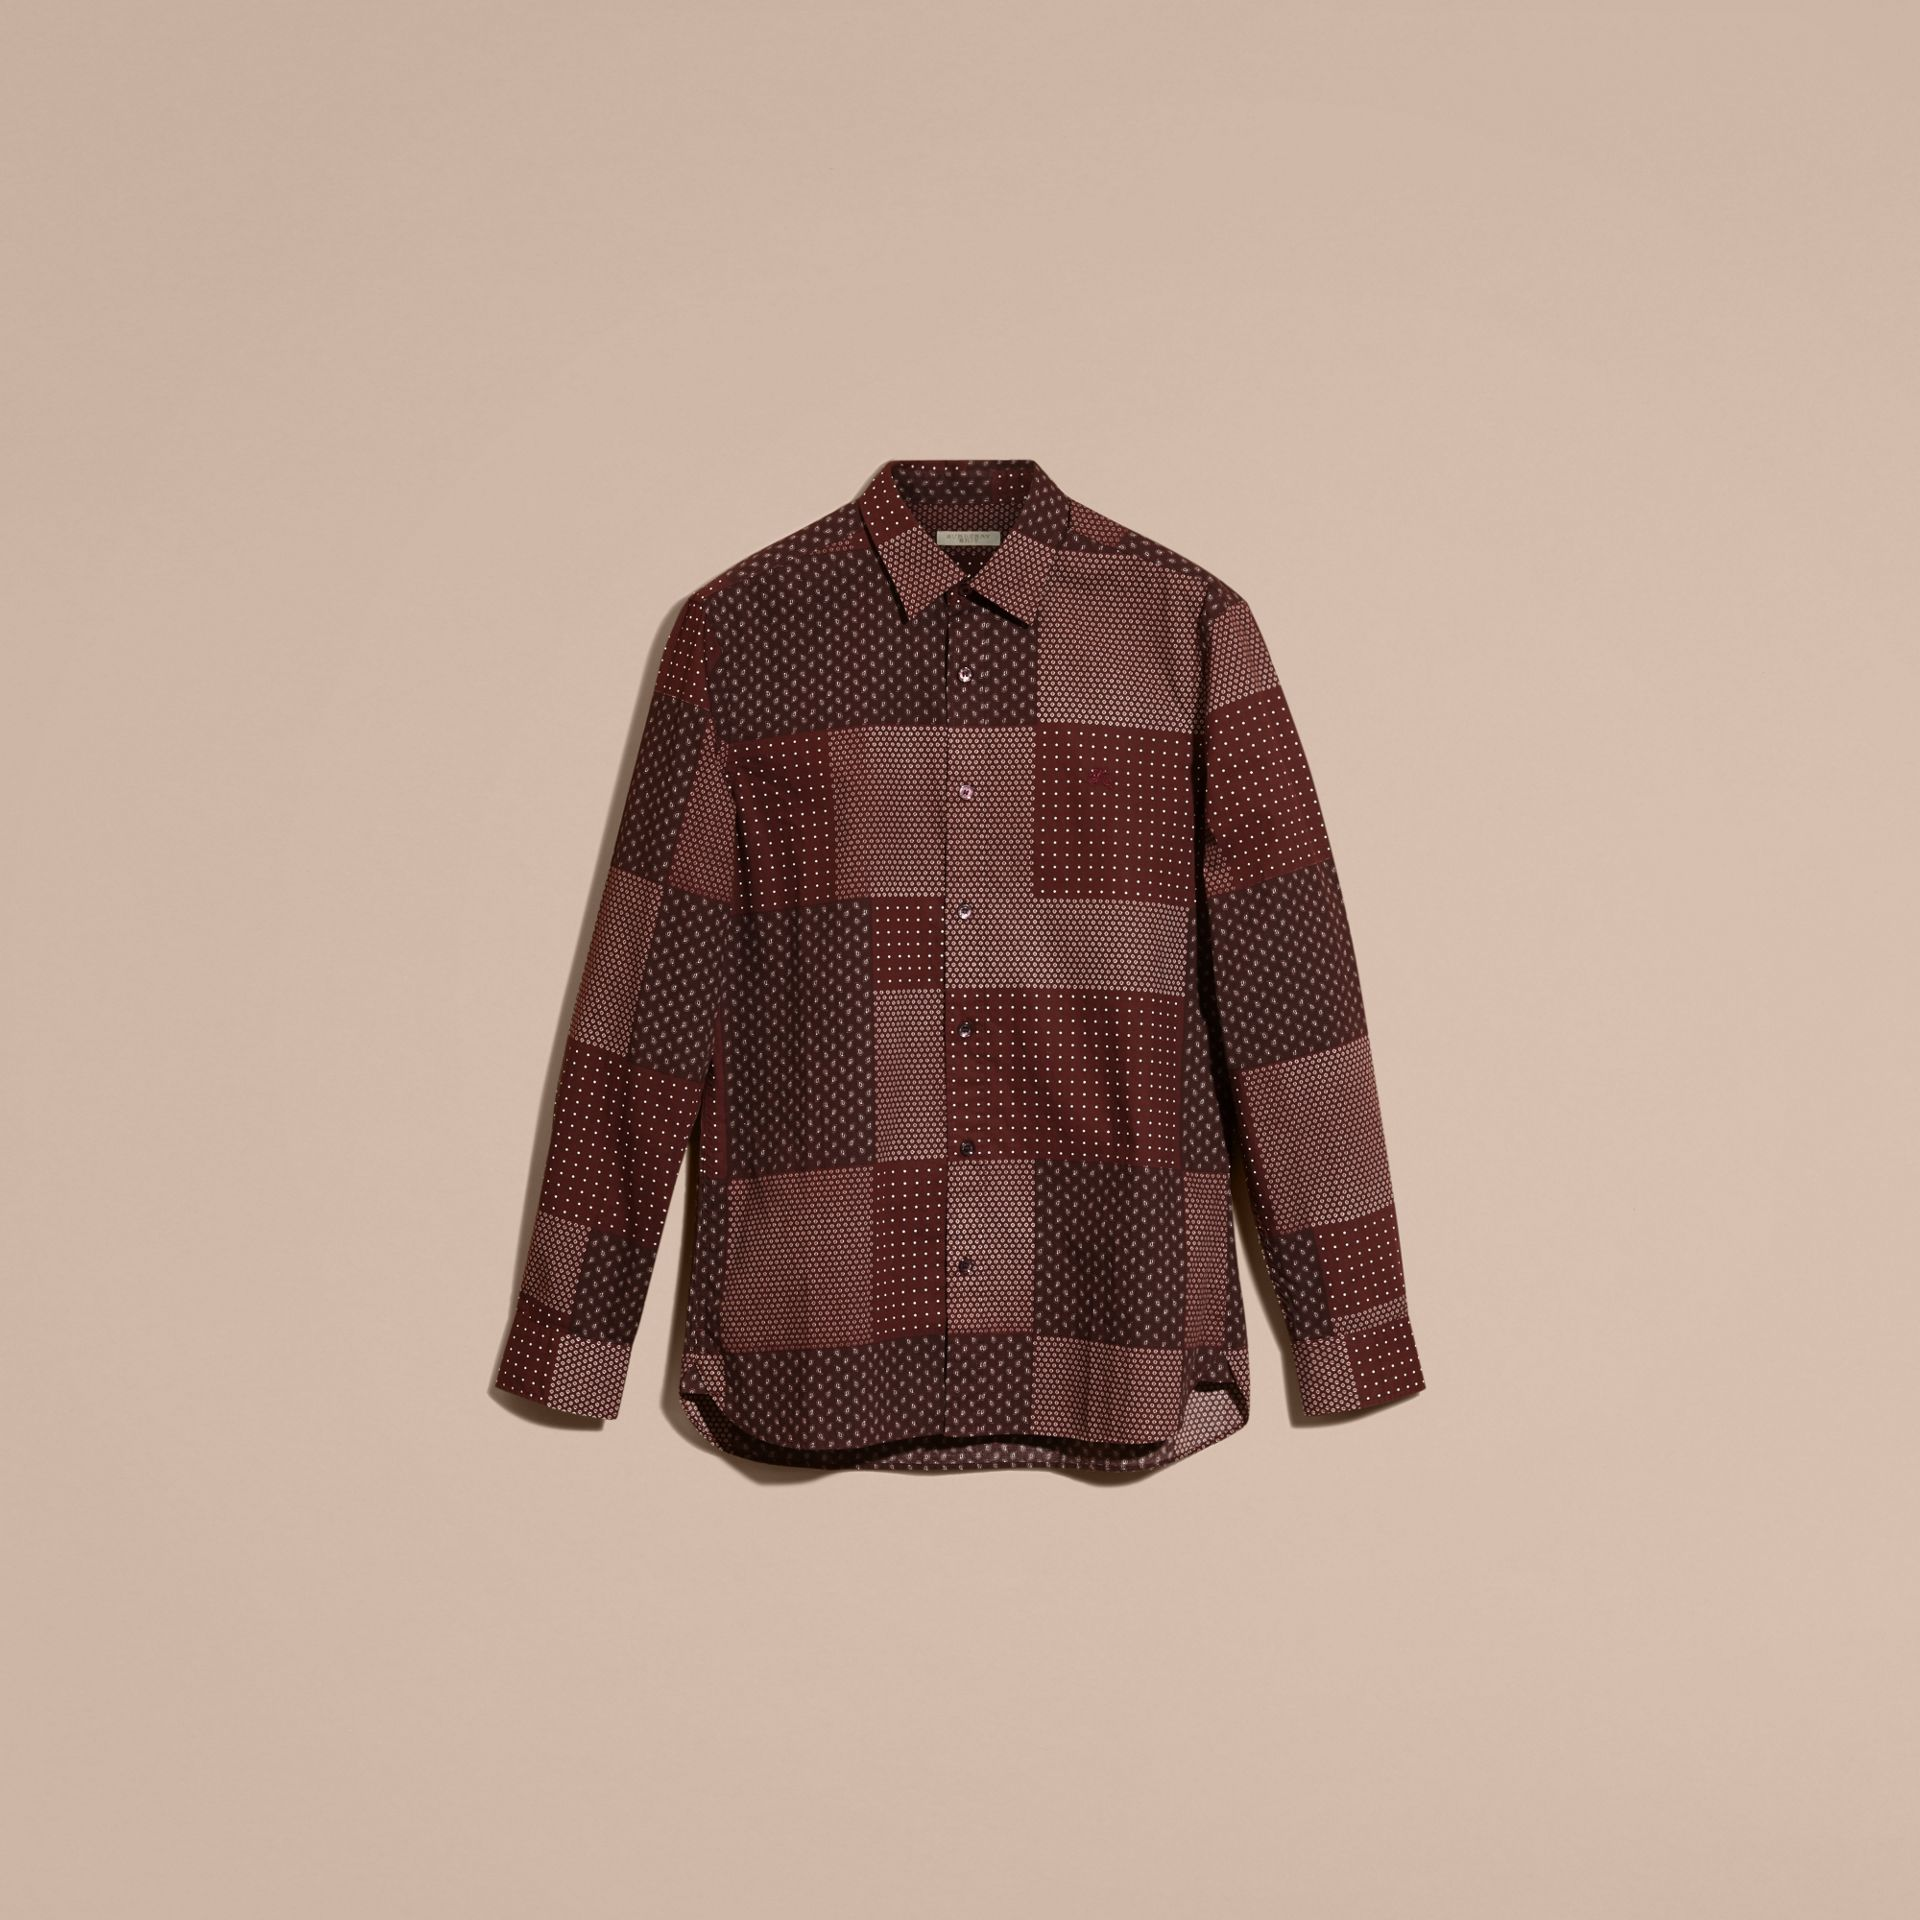 Dark elderberry Patchwork Print Cotton Shirt Dark Elderberry - gallery image 4